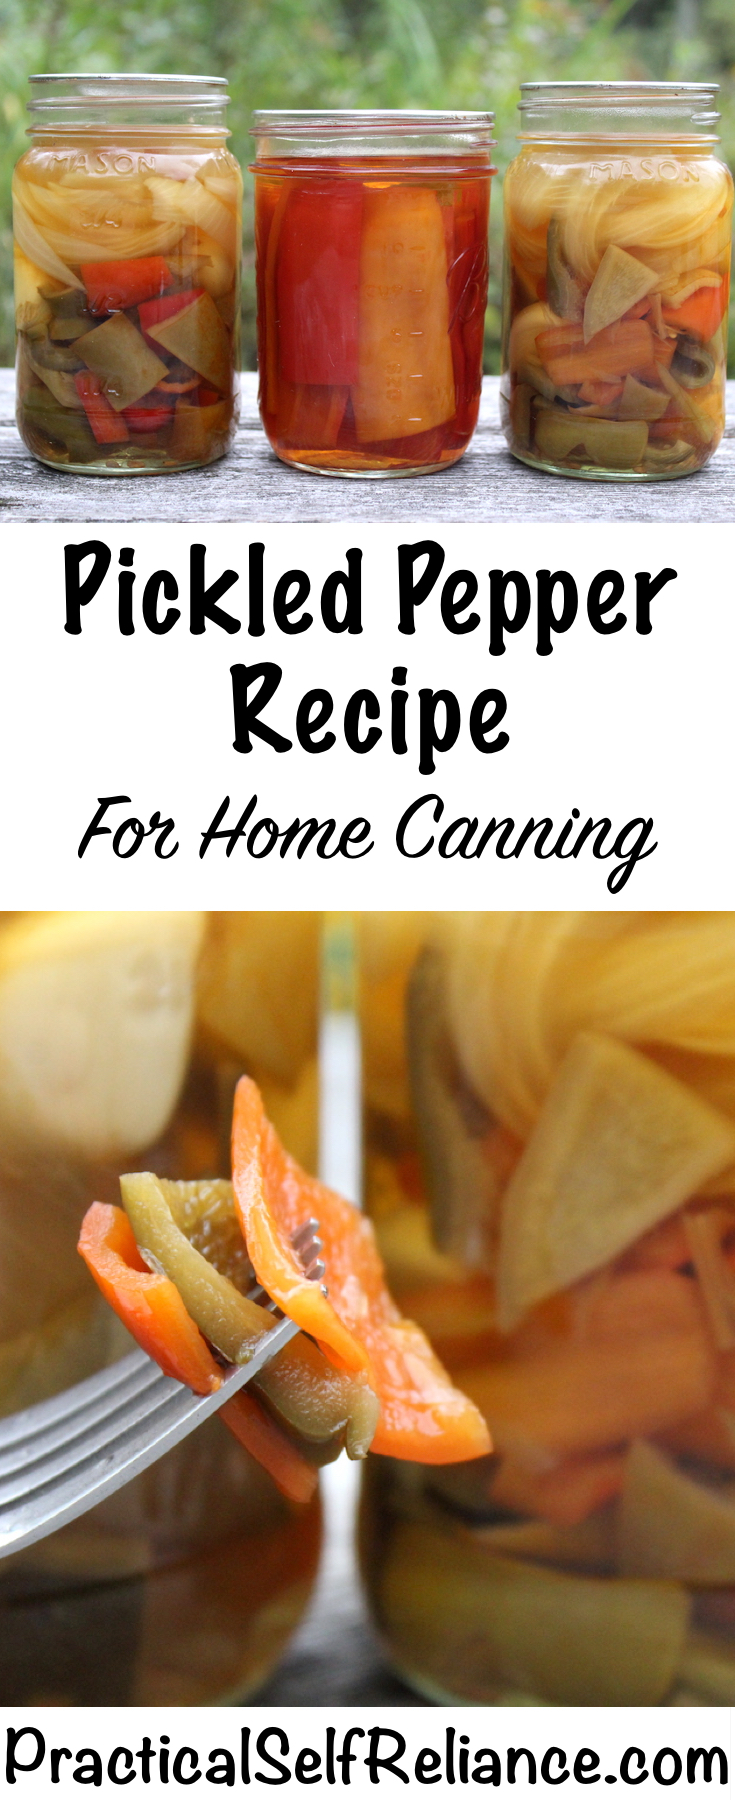 Pickled Pepper Canning Recipe (Hot or Sweet) #peppers #recipes #pepperrecipes #pickledpeppers #canning #foodpreservation #homesteading #selfsufficiency #pickles